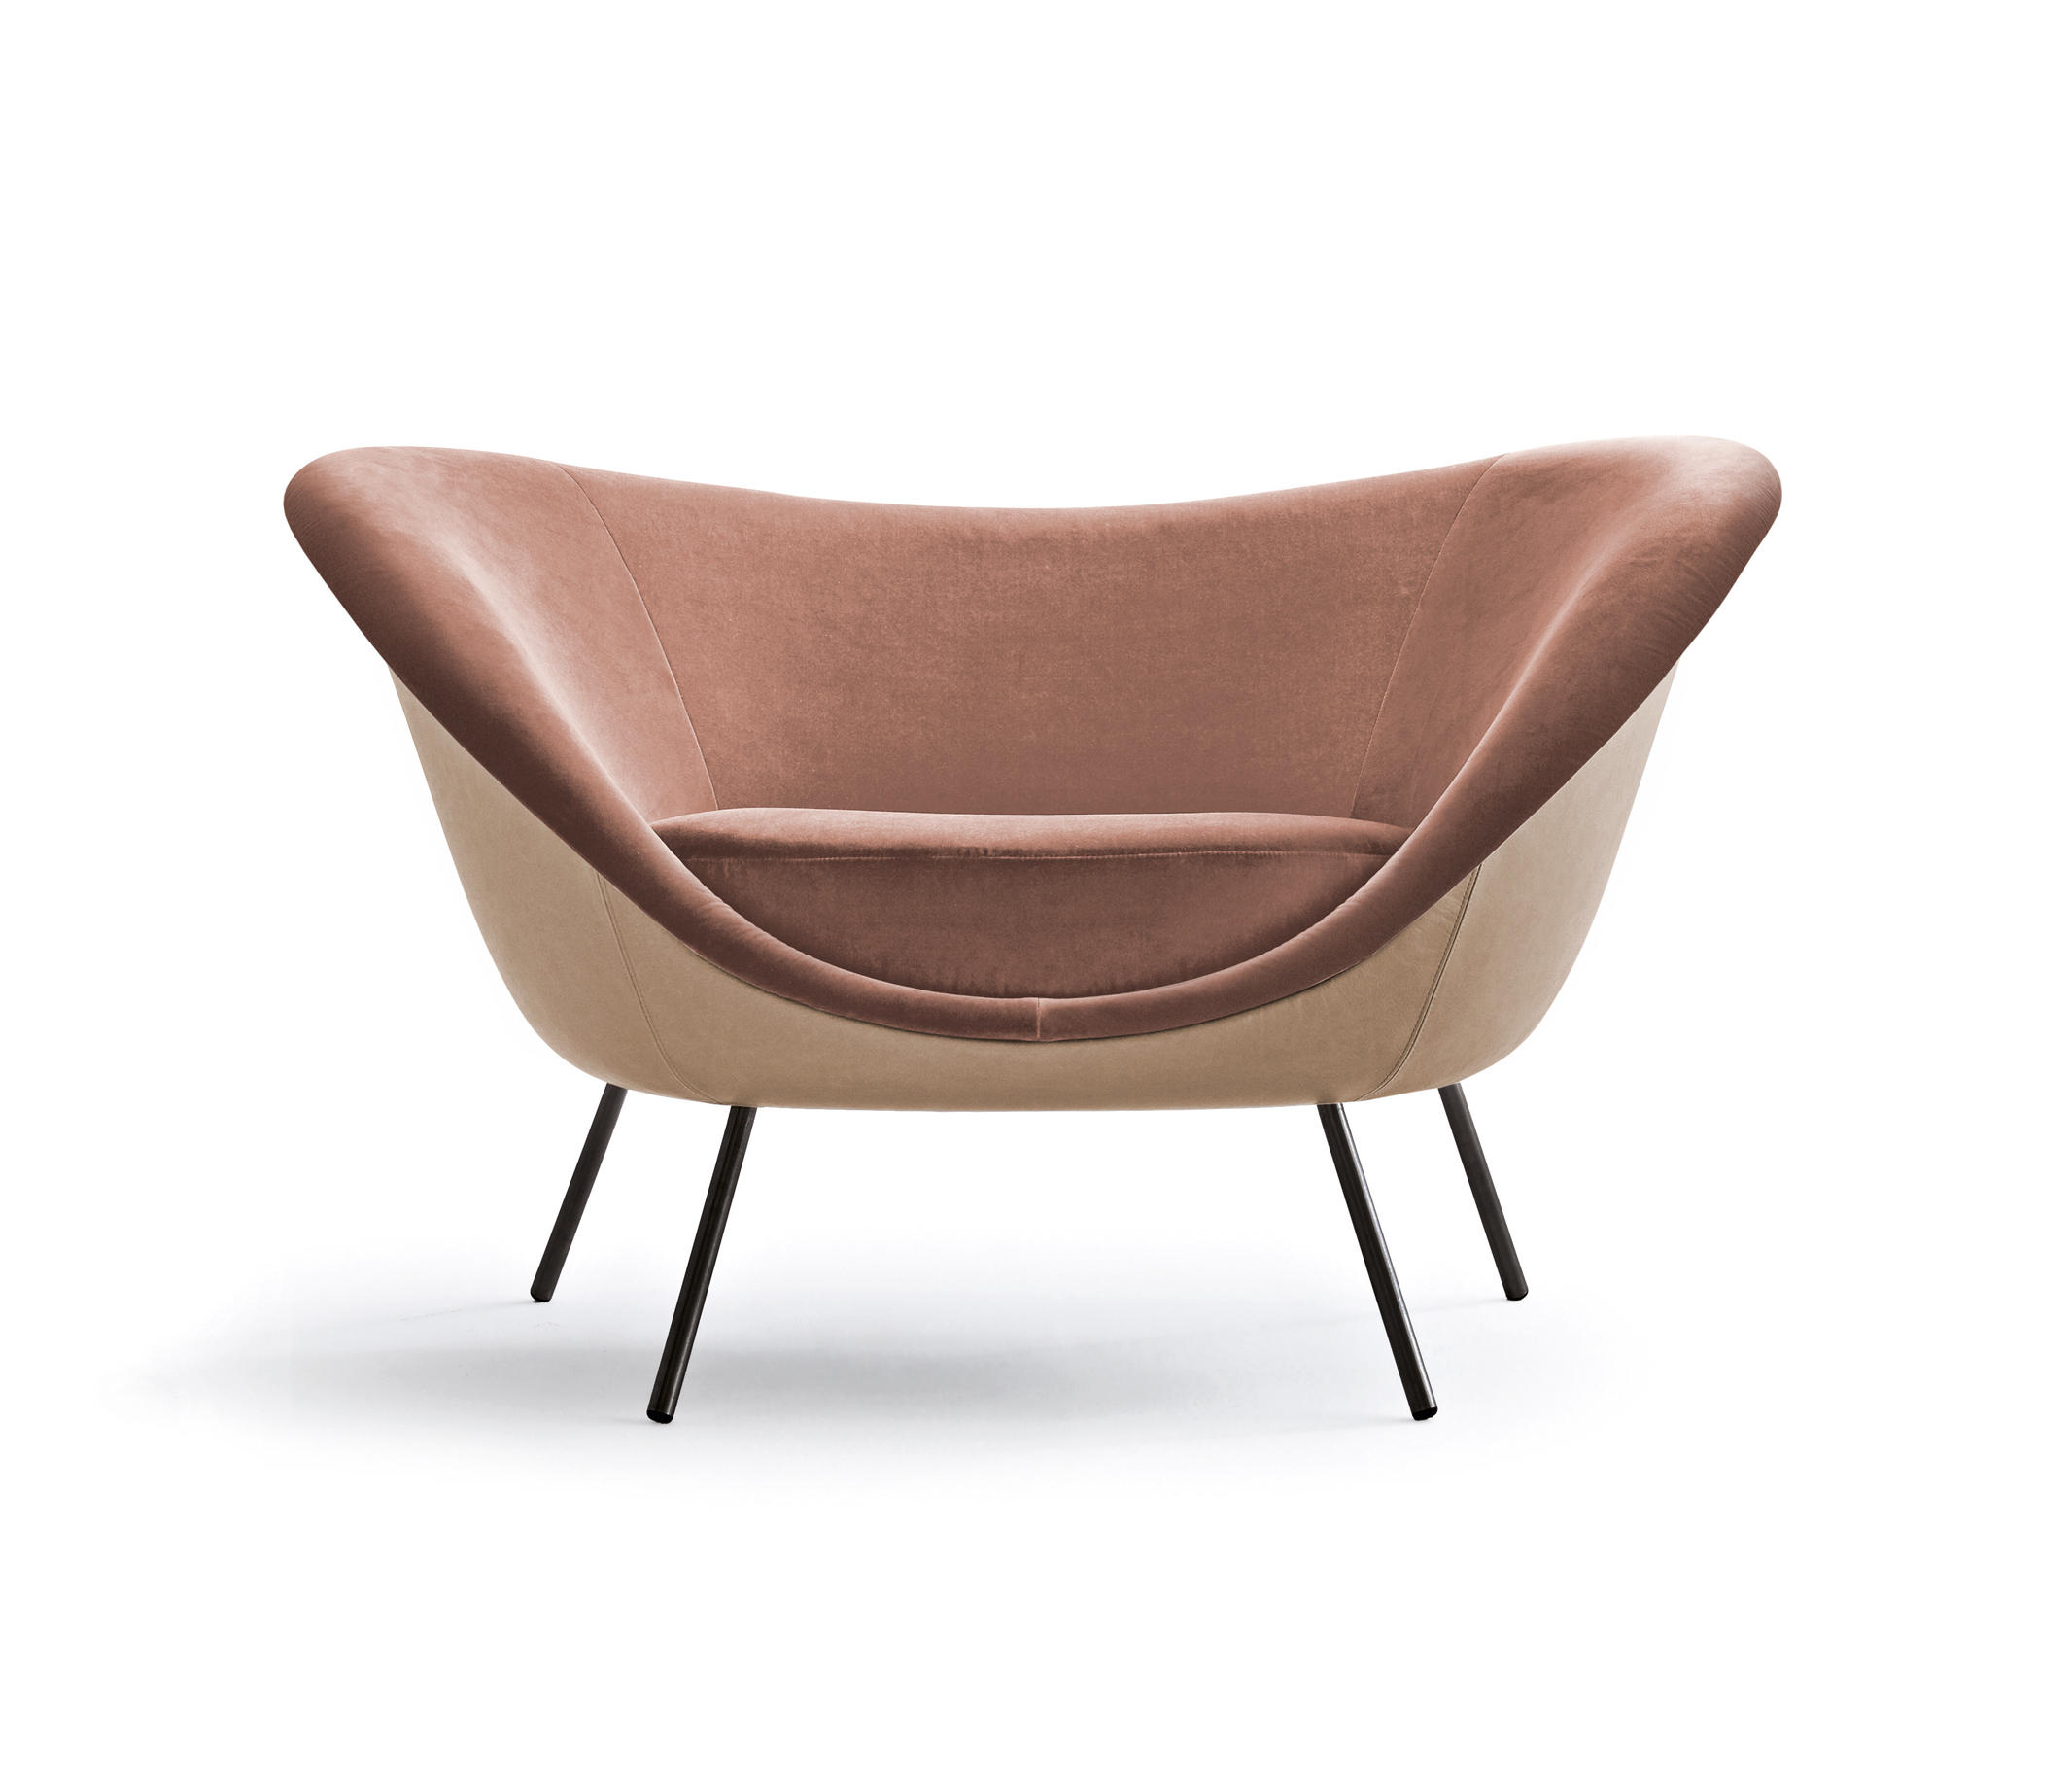 Armchair lounge chairs from molteni c architonic for Armchair furniture